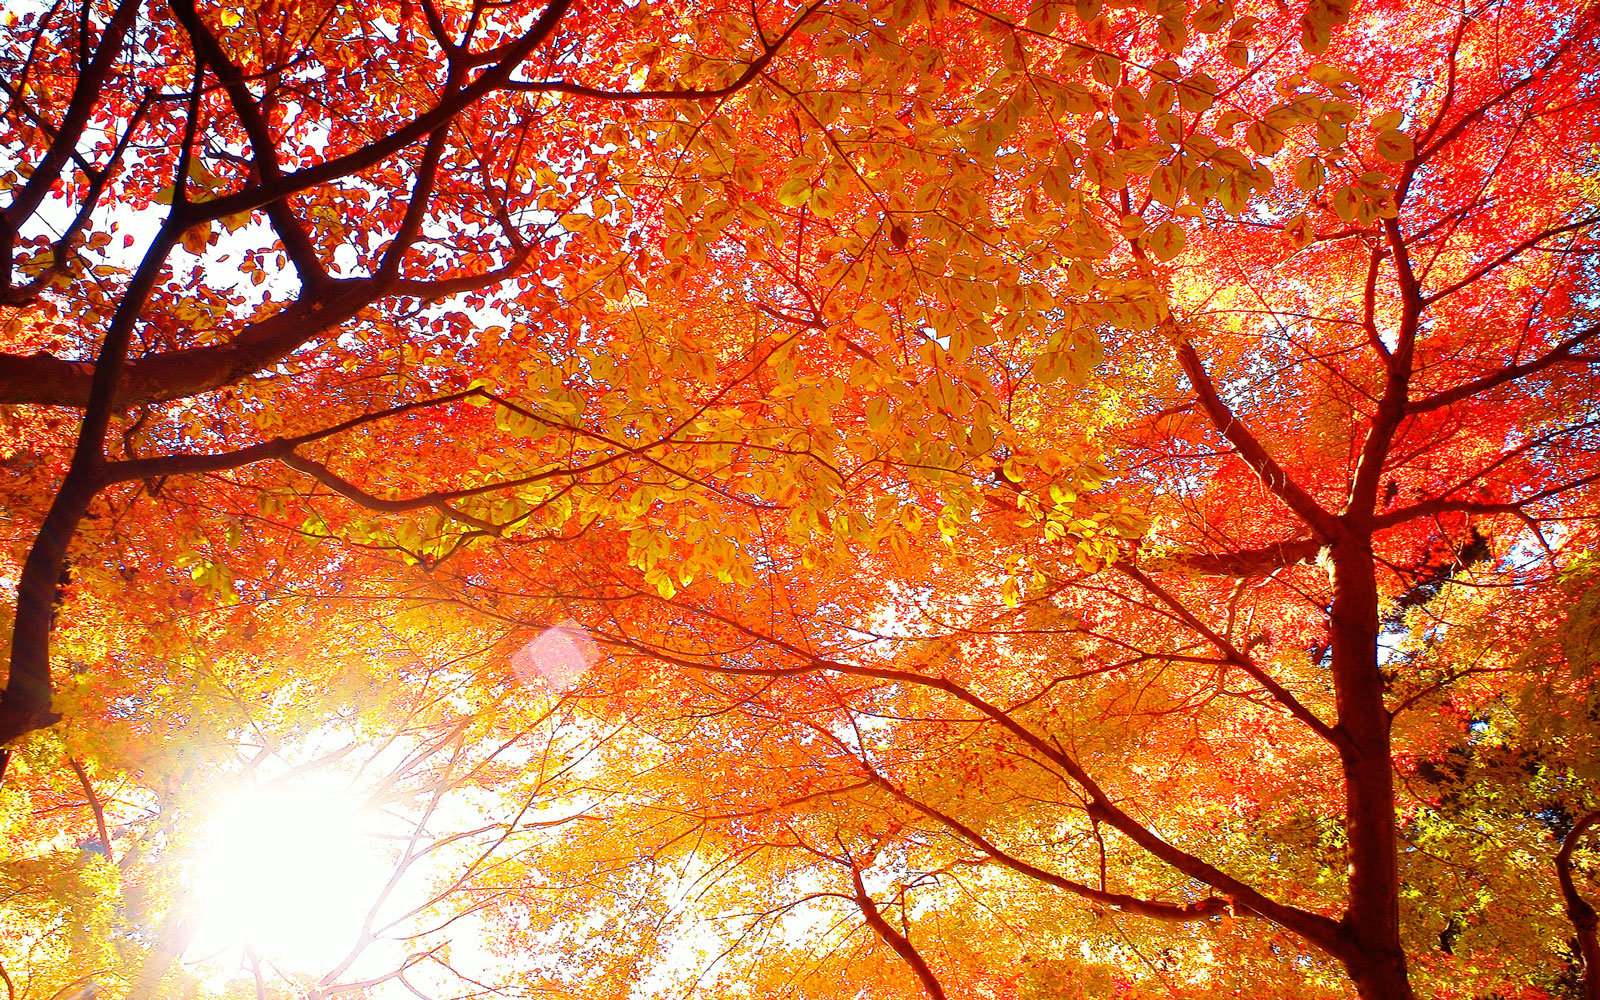 Our obsession with fall foliage can be traced back 1,200 years